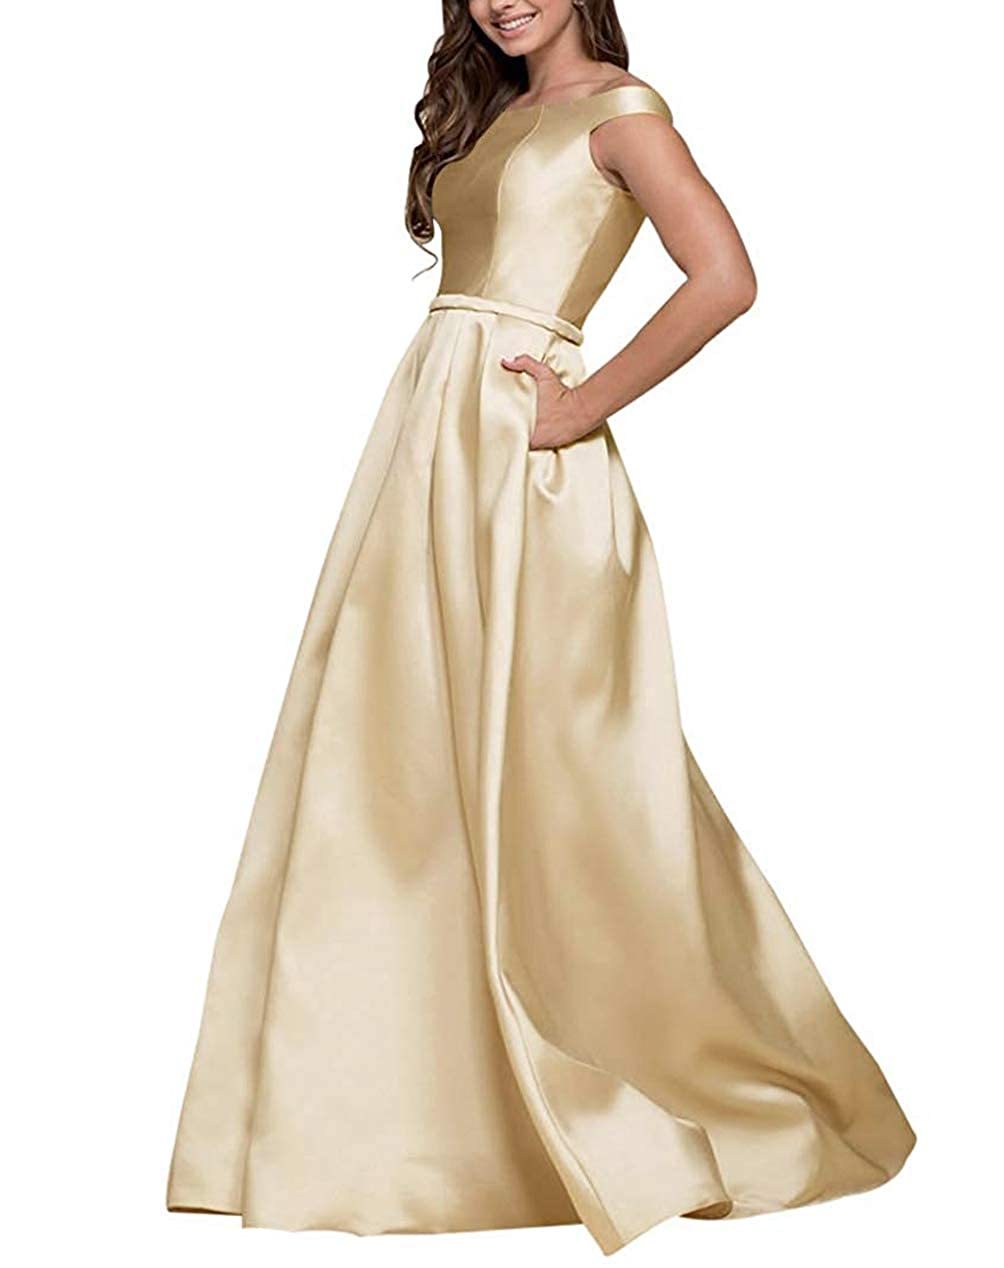 Champagne Tmaoomo Aline Off The Shoulder Satin Prom Party Dresses for Women Formal Evening Gowns